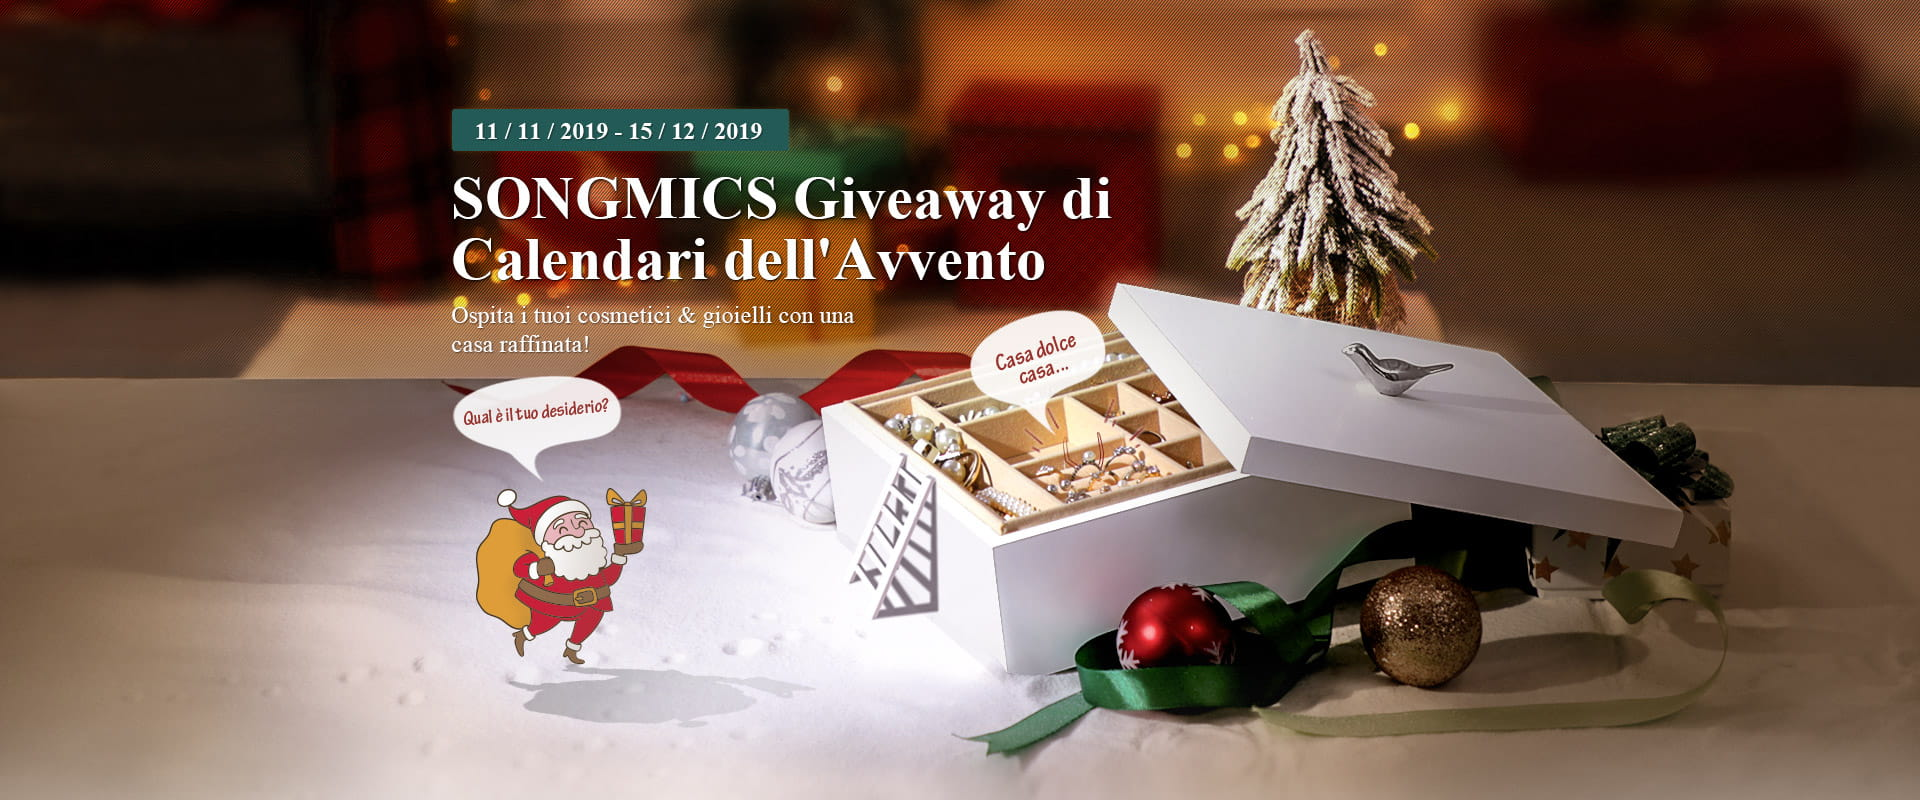 SONGMICS Giveaway di Calendari dell'Avvento